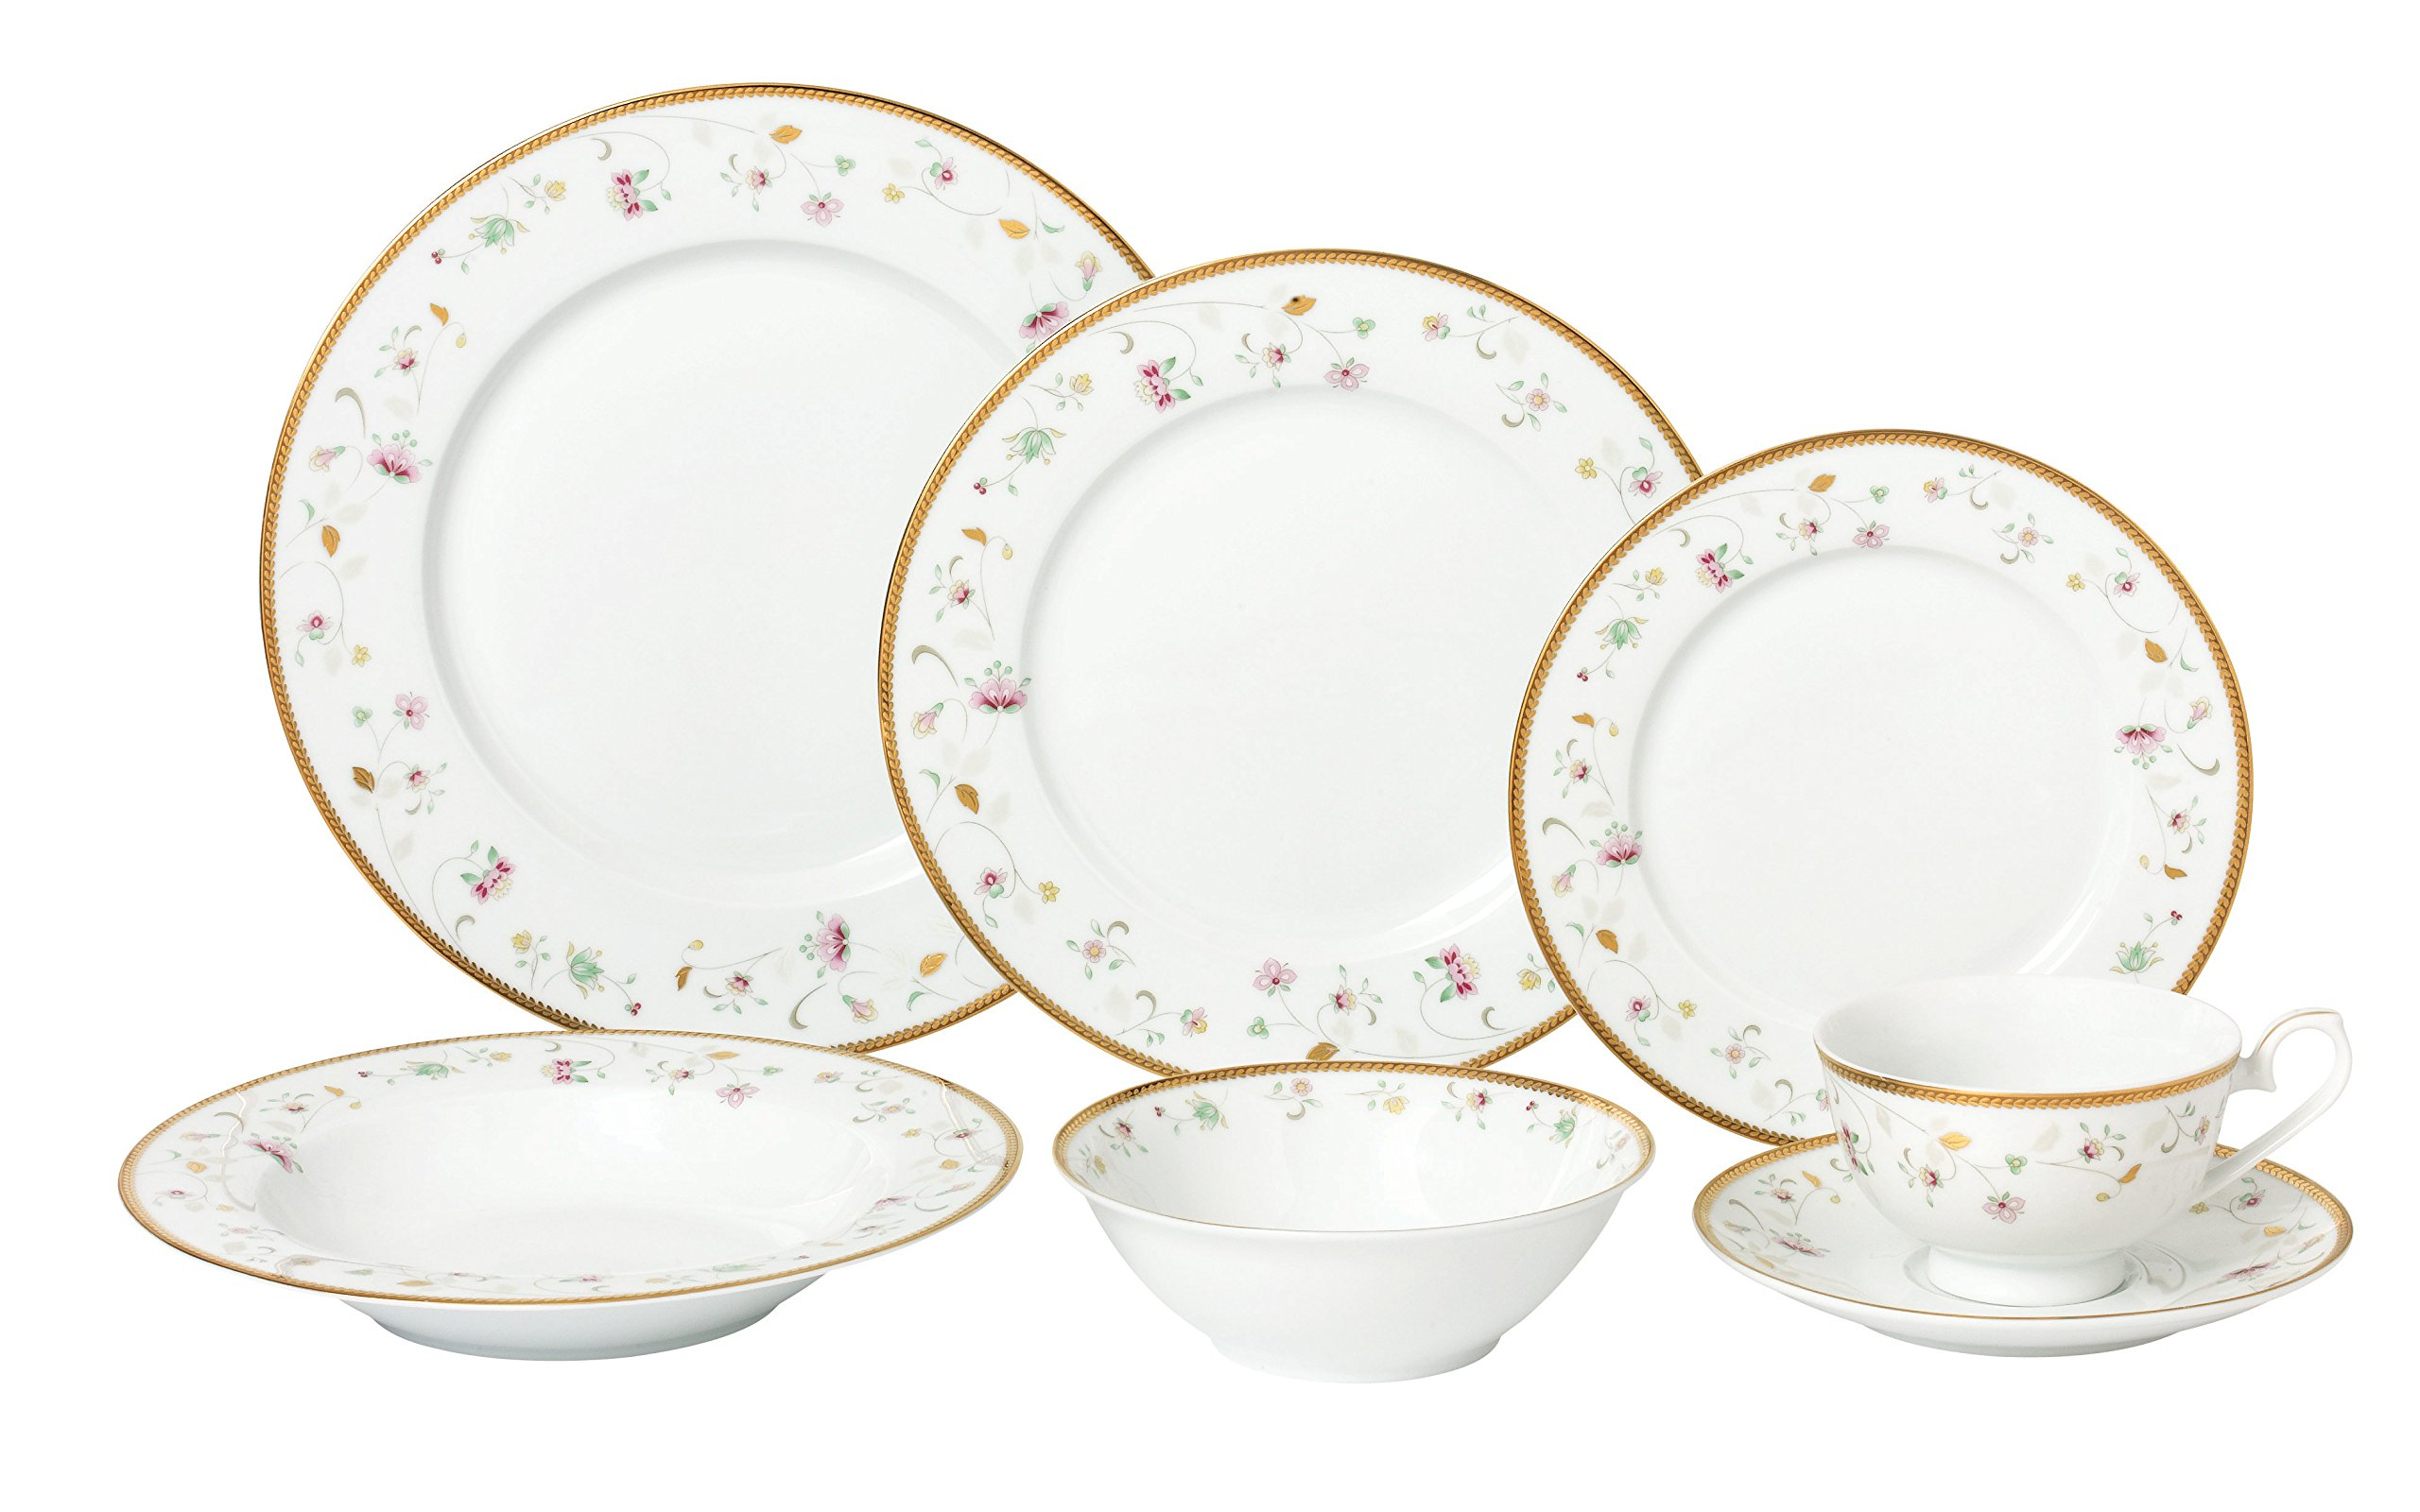 Lorren Home Trends 28 Piece 'Greta' Bone China Dinnerware Set (Service for 4 People), Gold